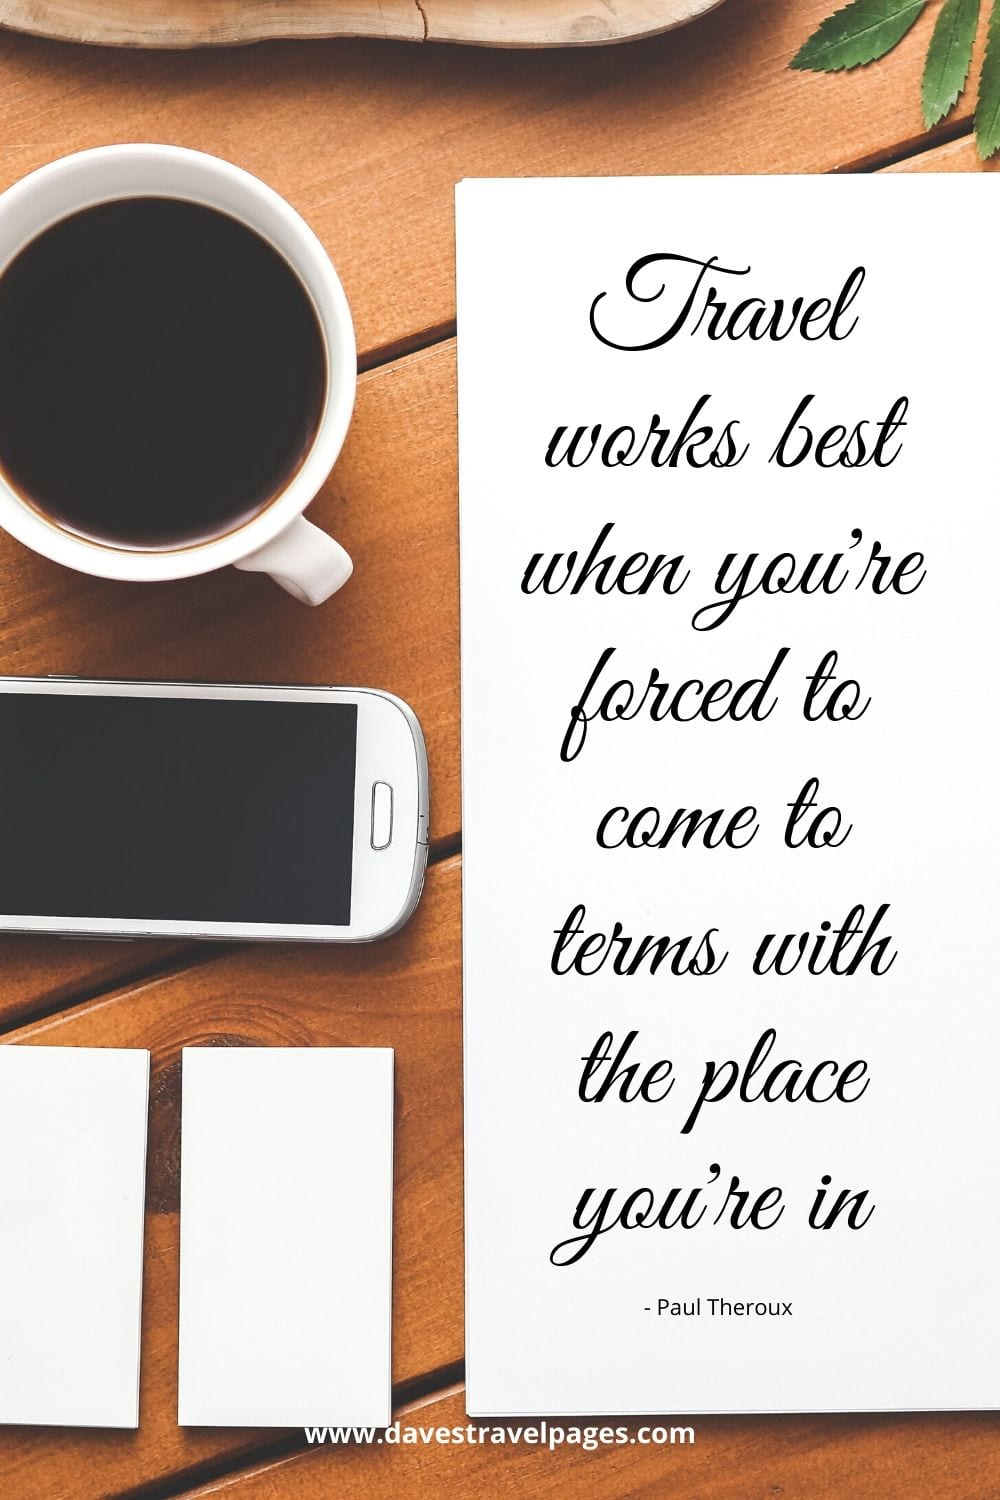 Travel Sayings: Travel works best when you're forced to come to terms with the place you're in. Paul Theroux